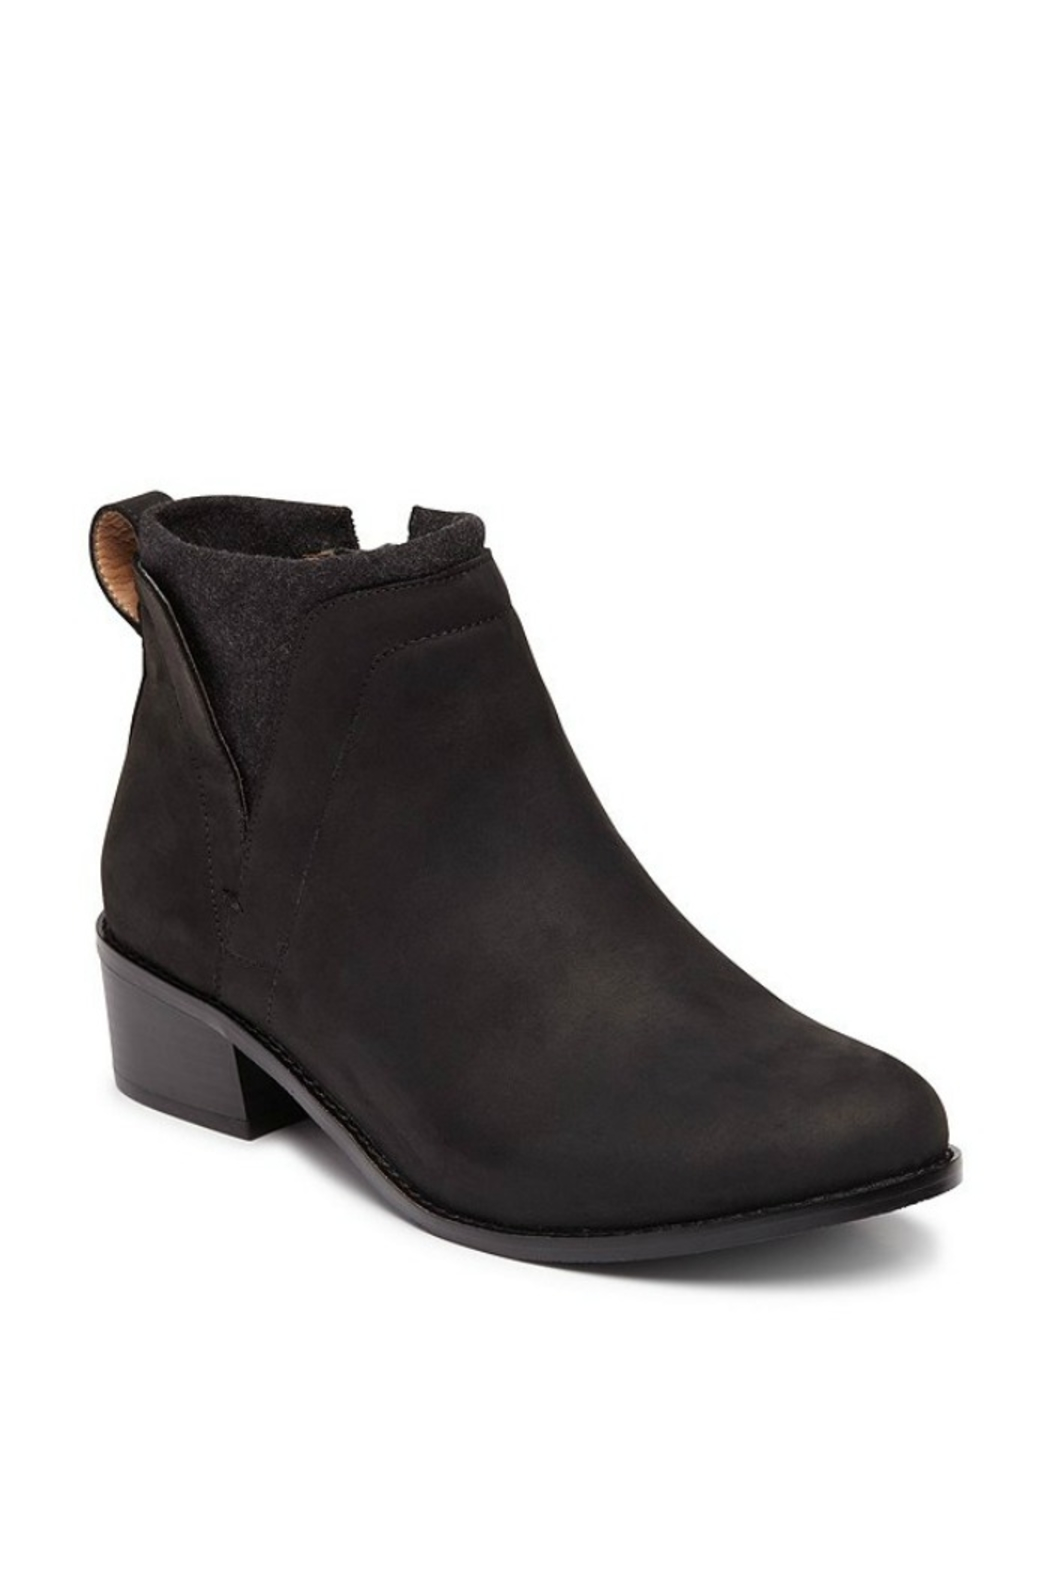 Vionic Joslyn Ankle Boot - Front Cropped Image